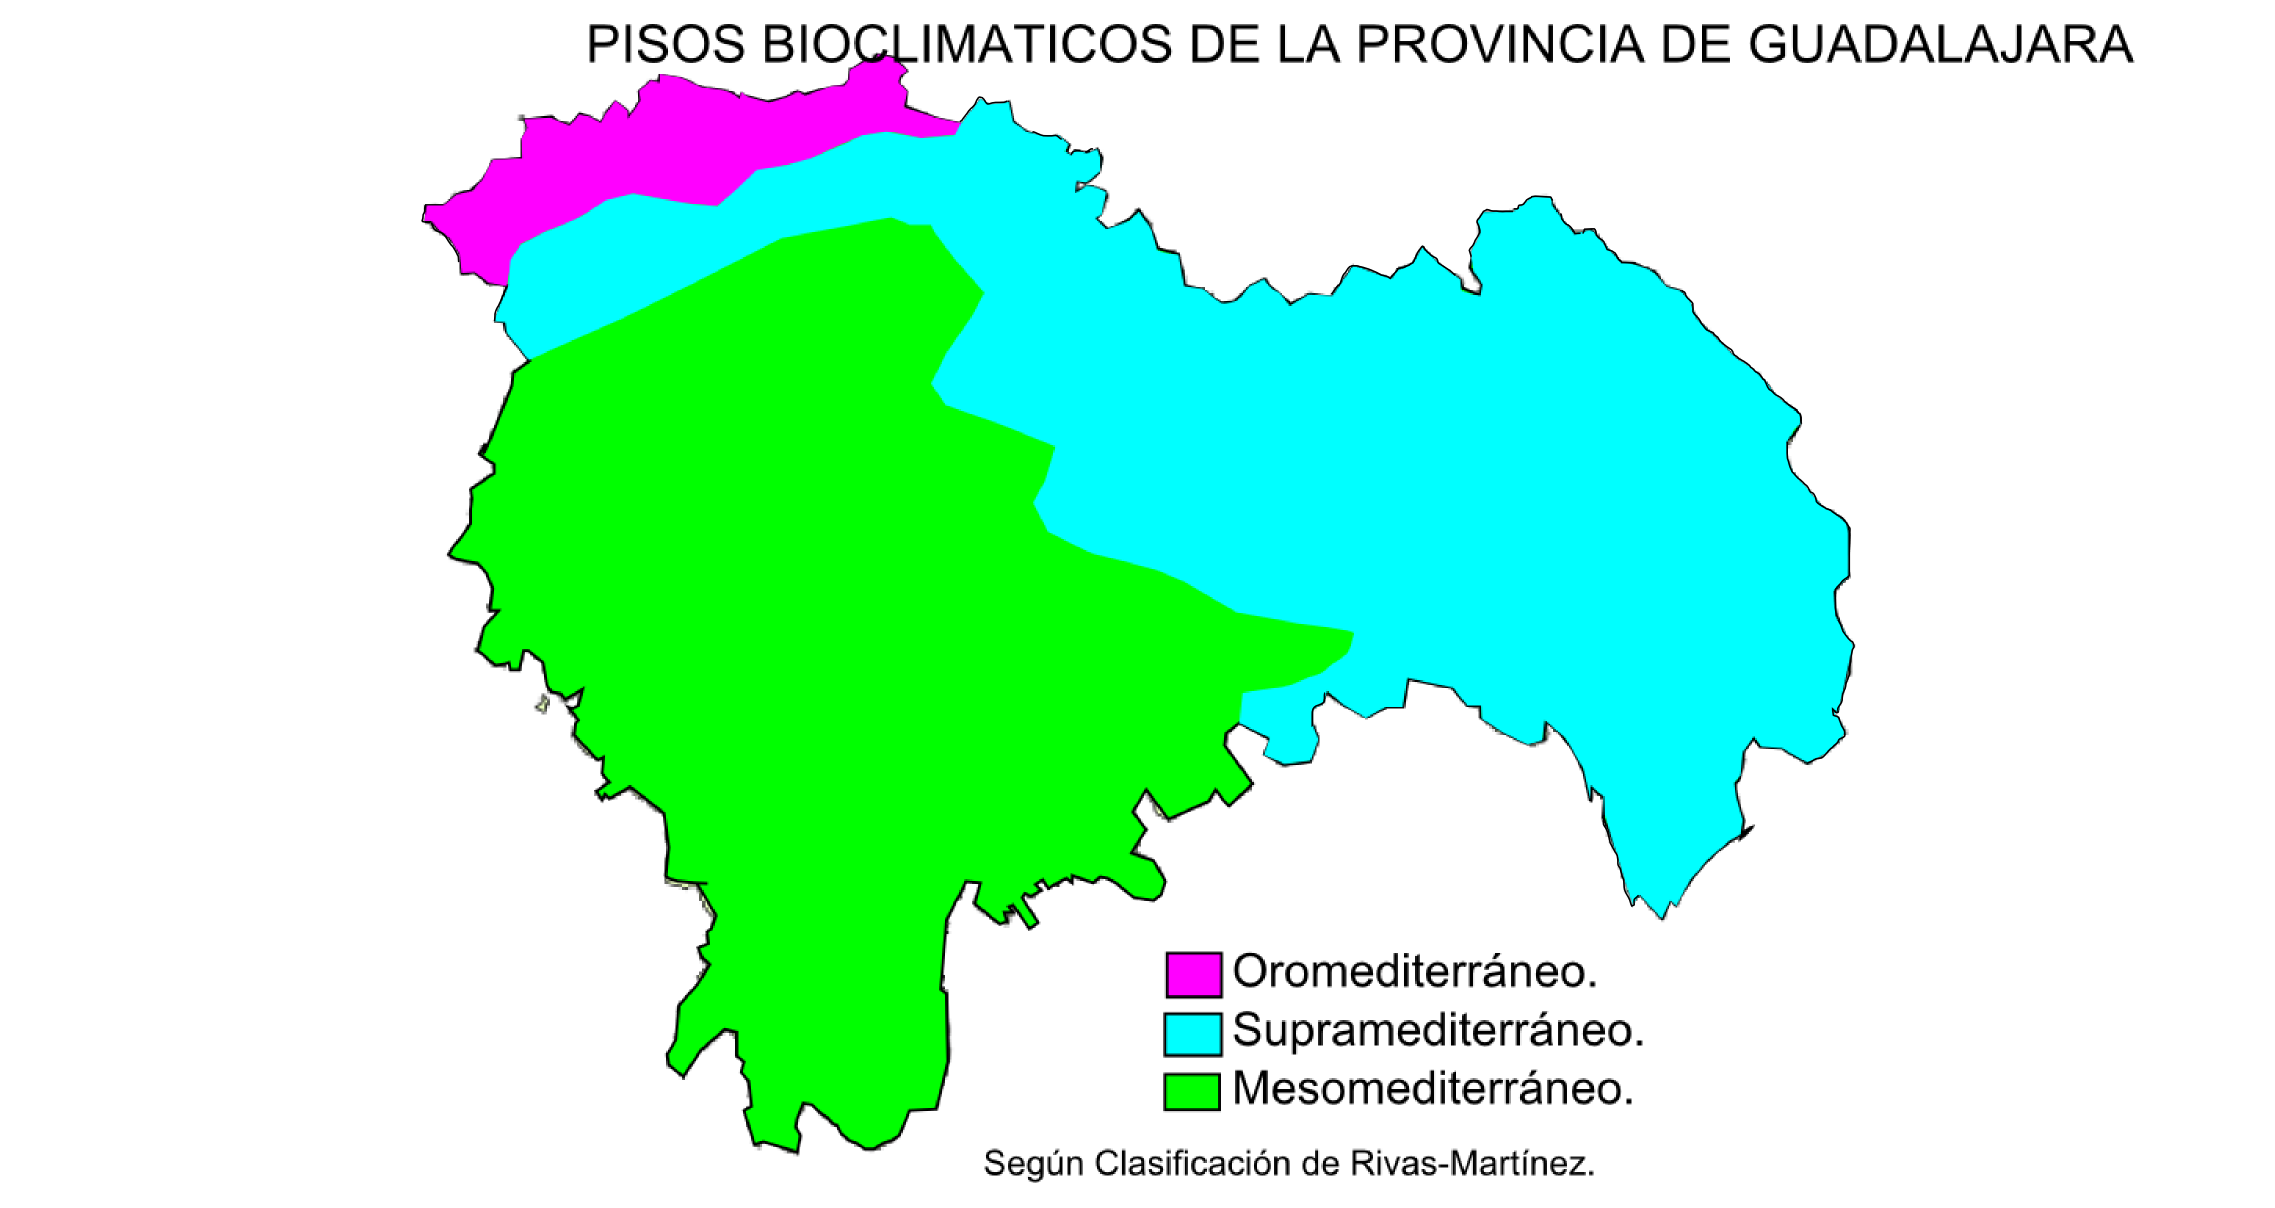 Bioclimatic zones of the province of Guadalajara 2009